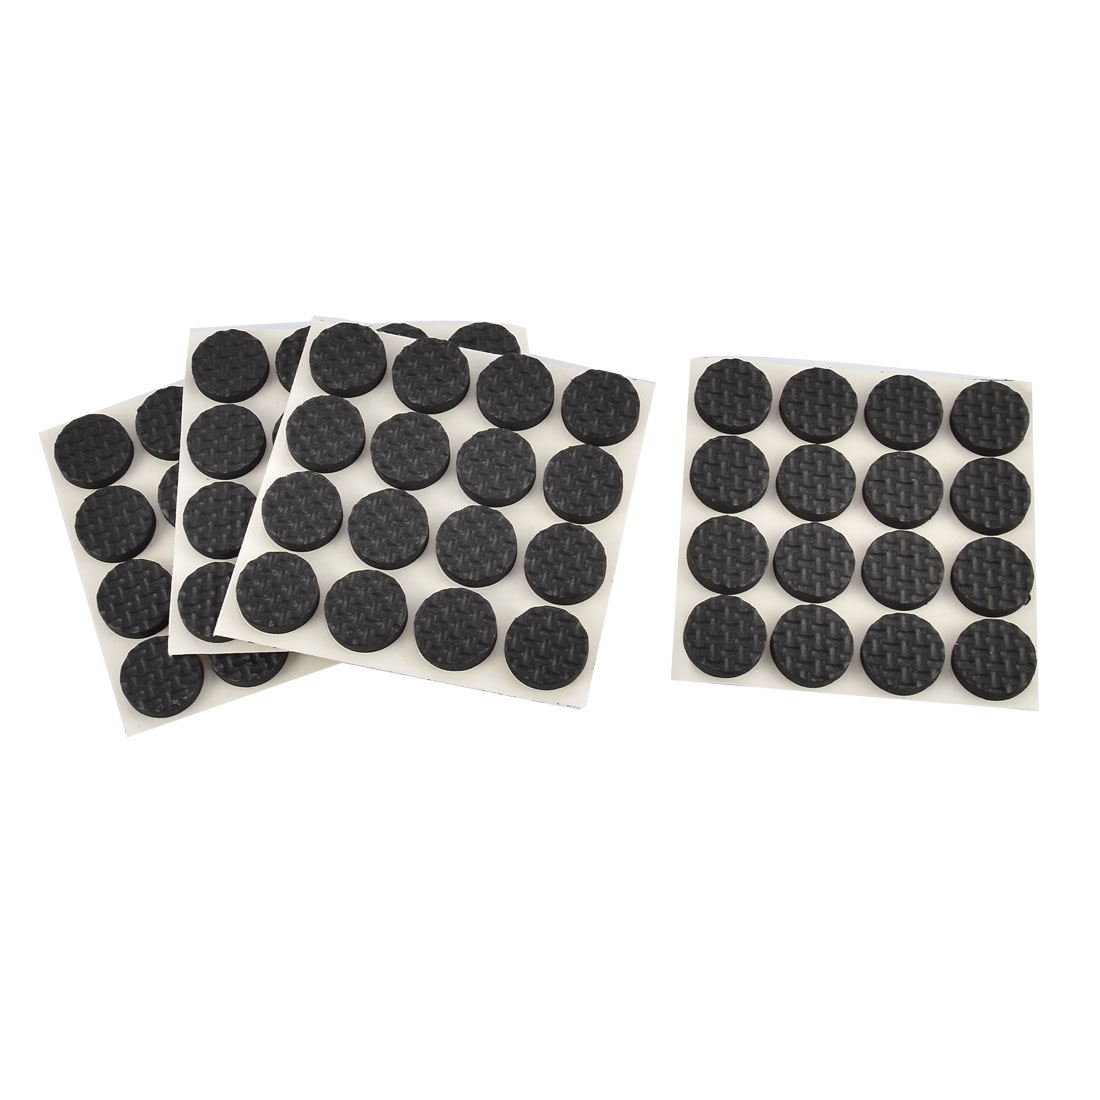 Household Bedroom Rubber Furniture Fitment Table Leg Foot Protection Pad 64pcs